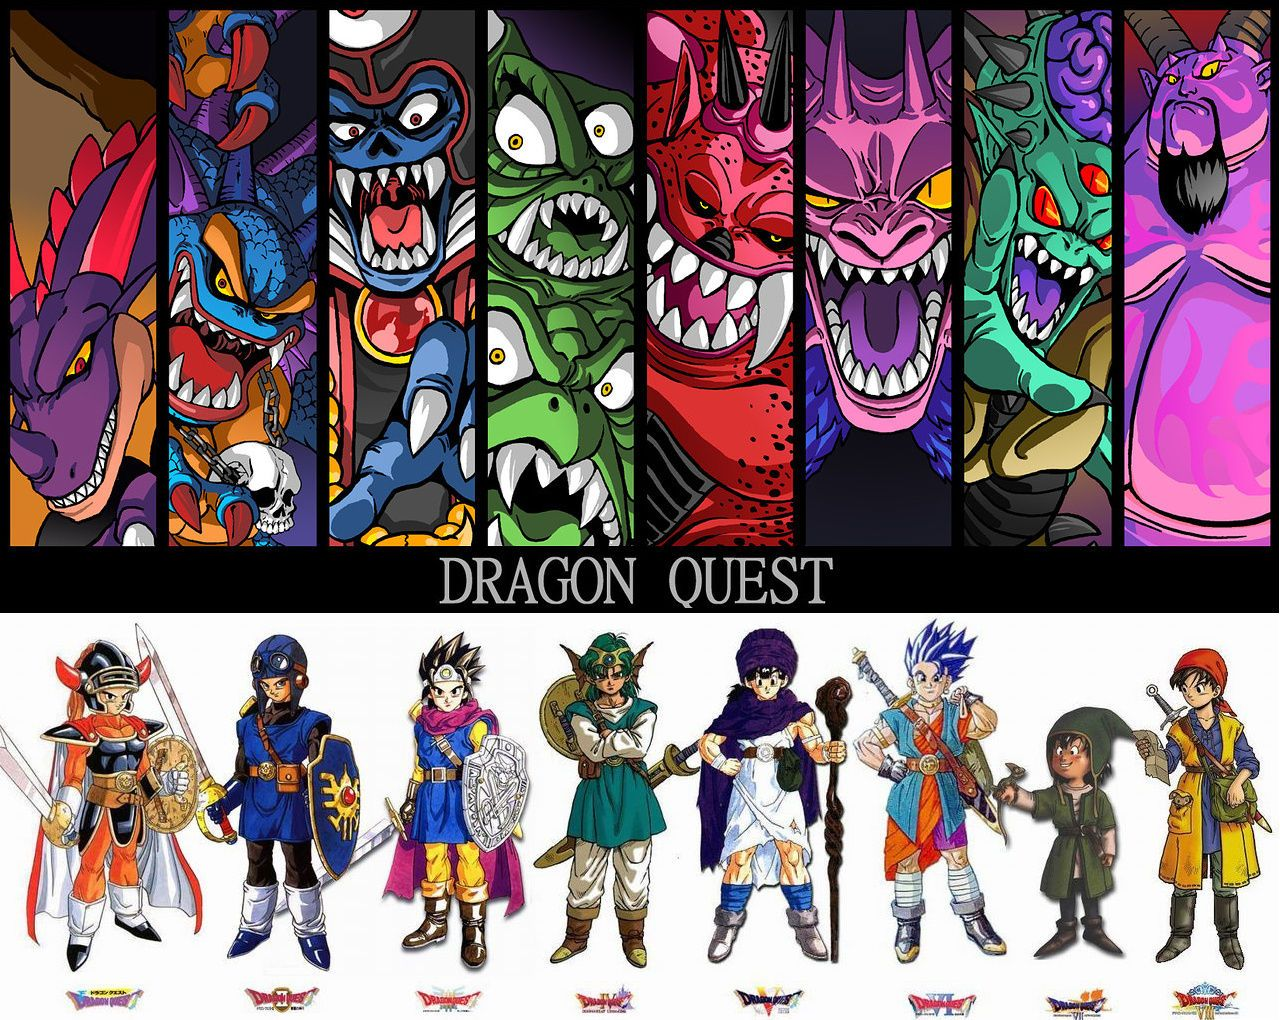 DRAGON QUEST | TV games | Dragon quest, Dragon quest 8, Dragon